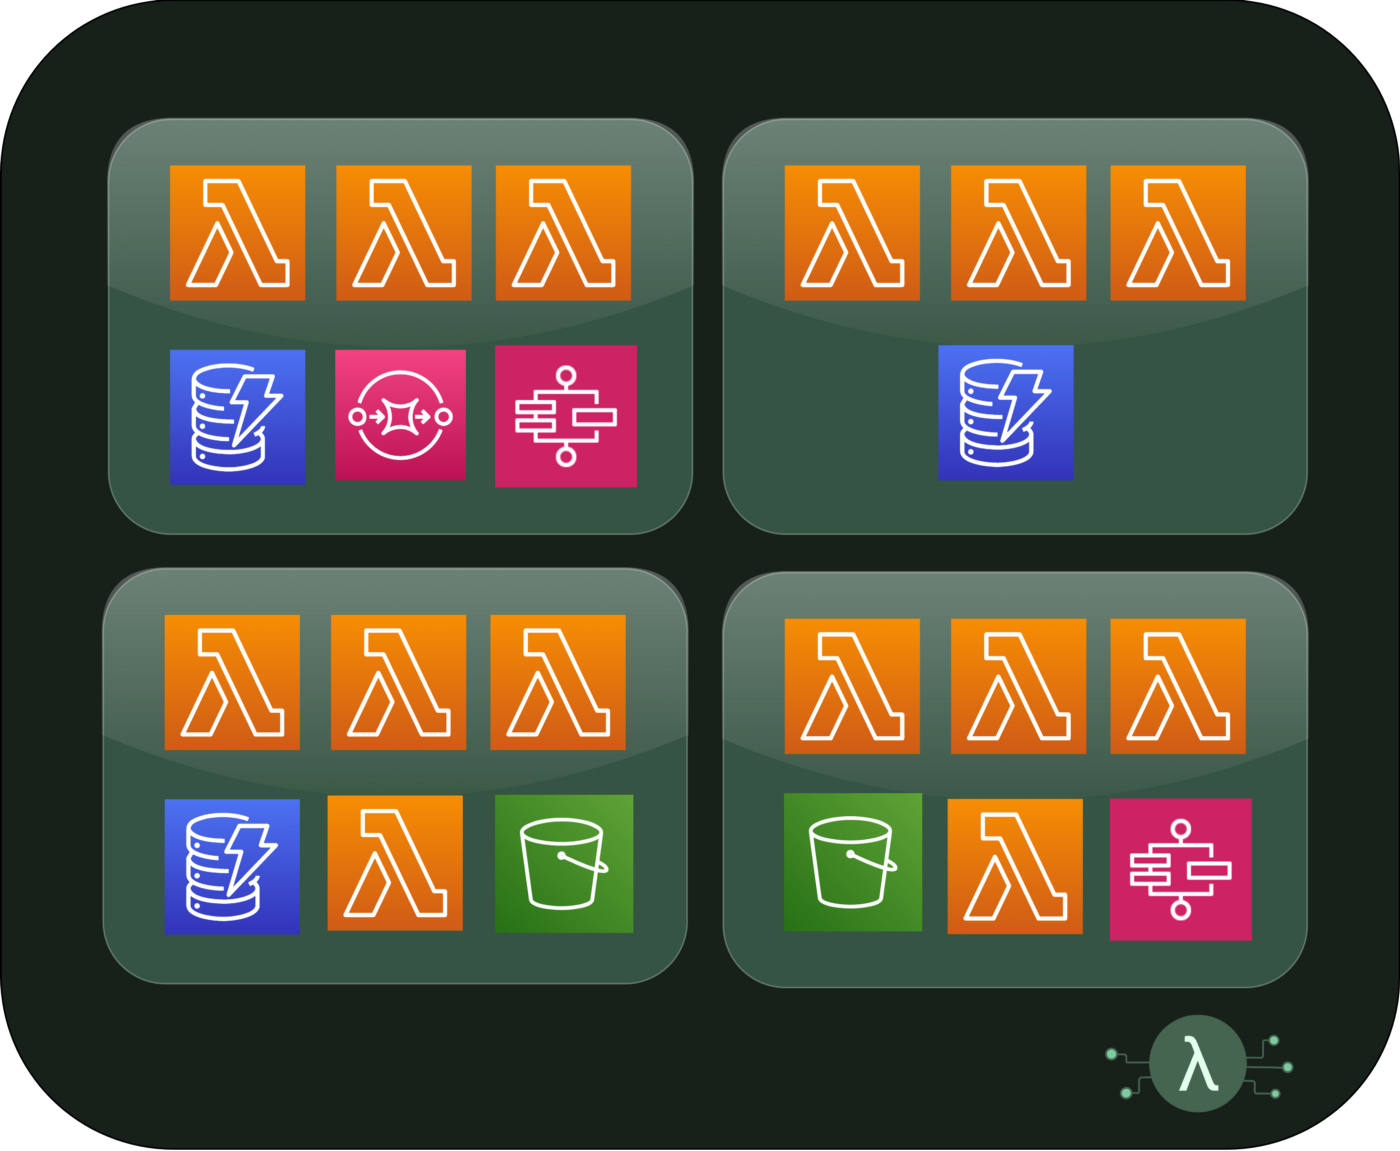 Abstract architecture diagram showing grouped AWS Services in boxes like AWS Lambda, DynamoDB, S3, EventBridge and Step Funcs